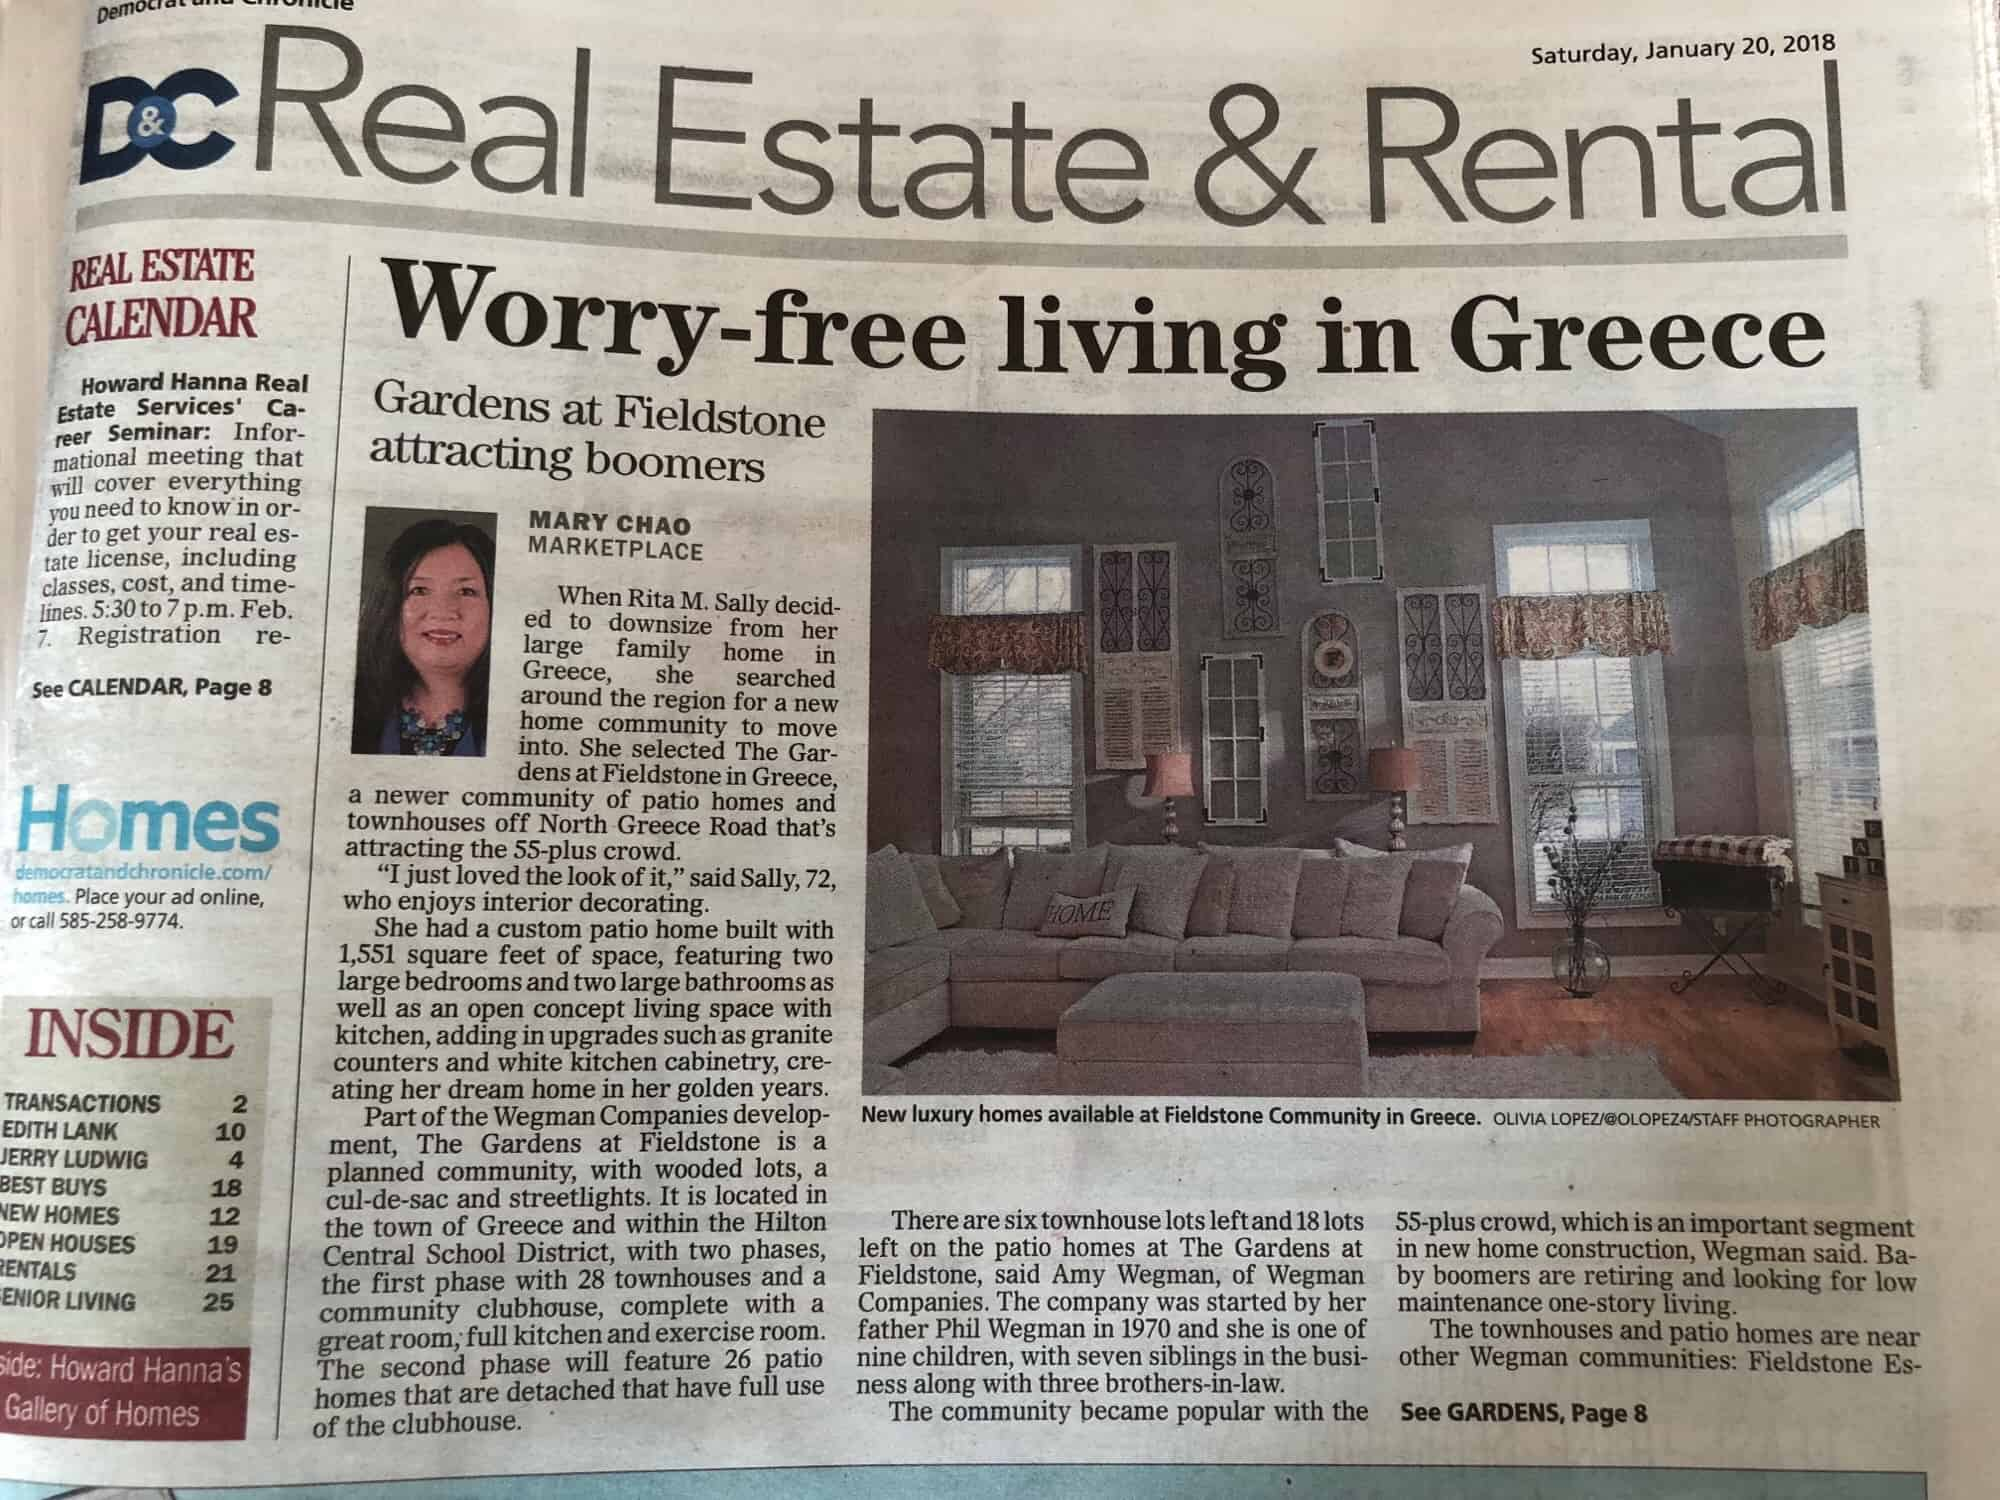 Worry-free living in Greece